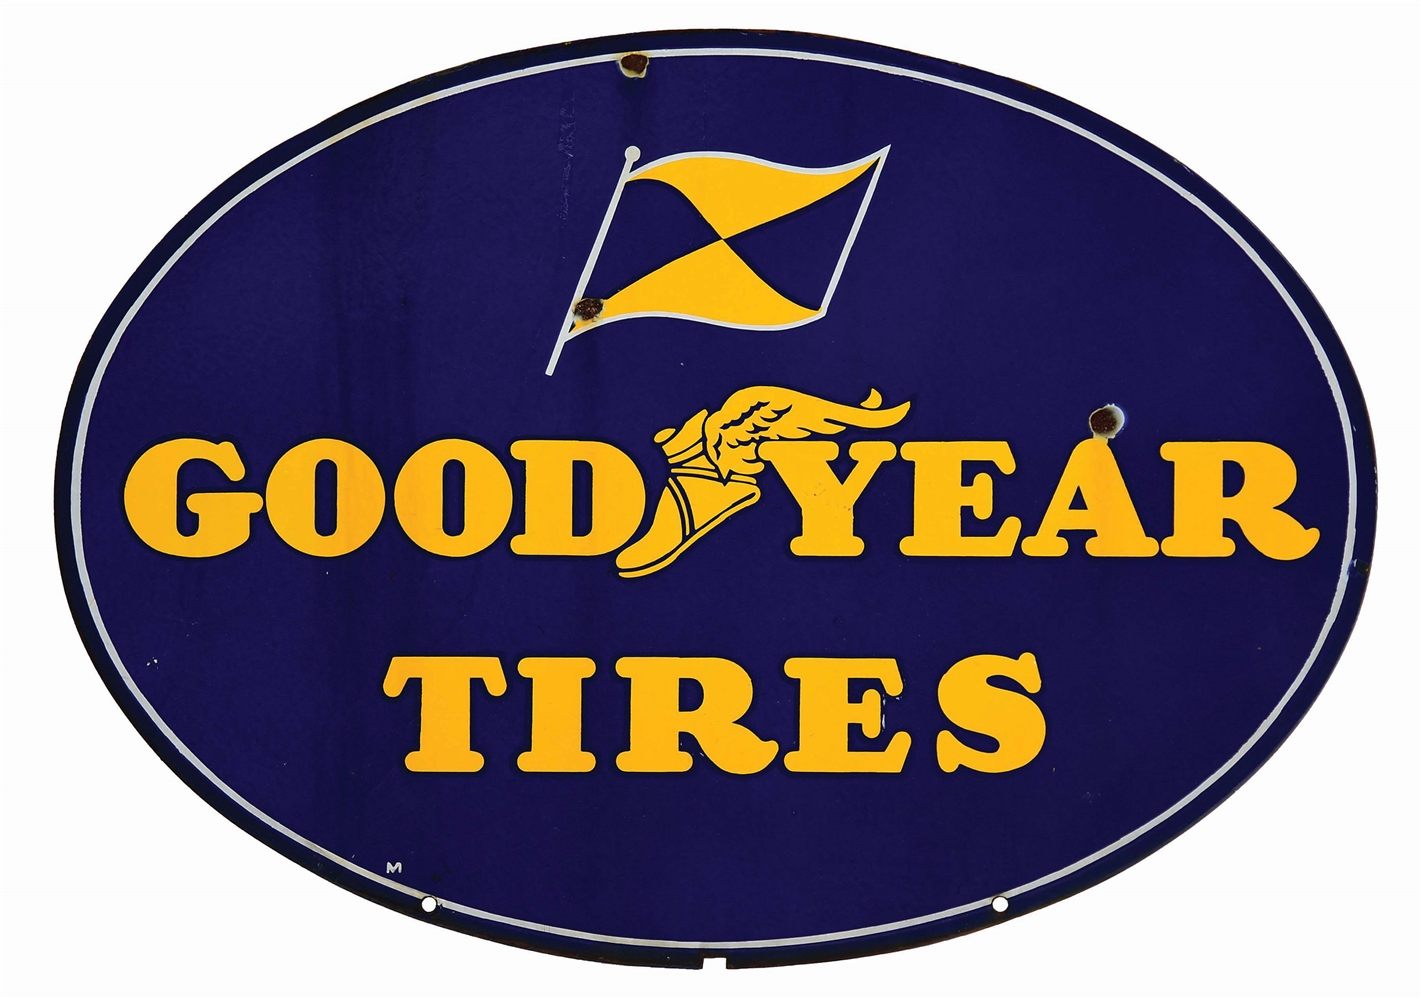 GOODYEAR TIRES PORCELAIN SERVICE STATION SIGN W/ FLAG & WINGED FOOT GRAPHIC.